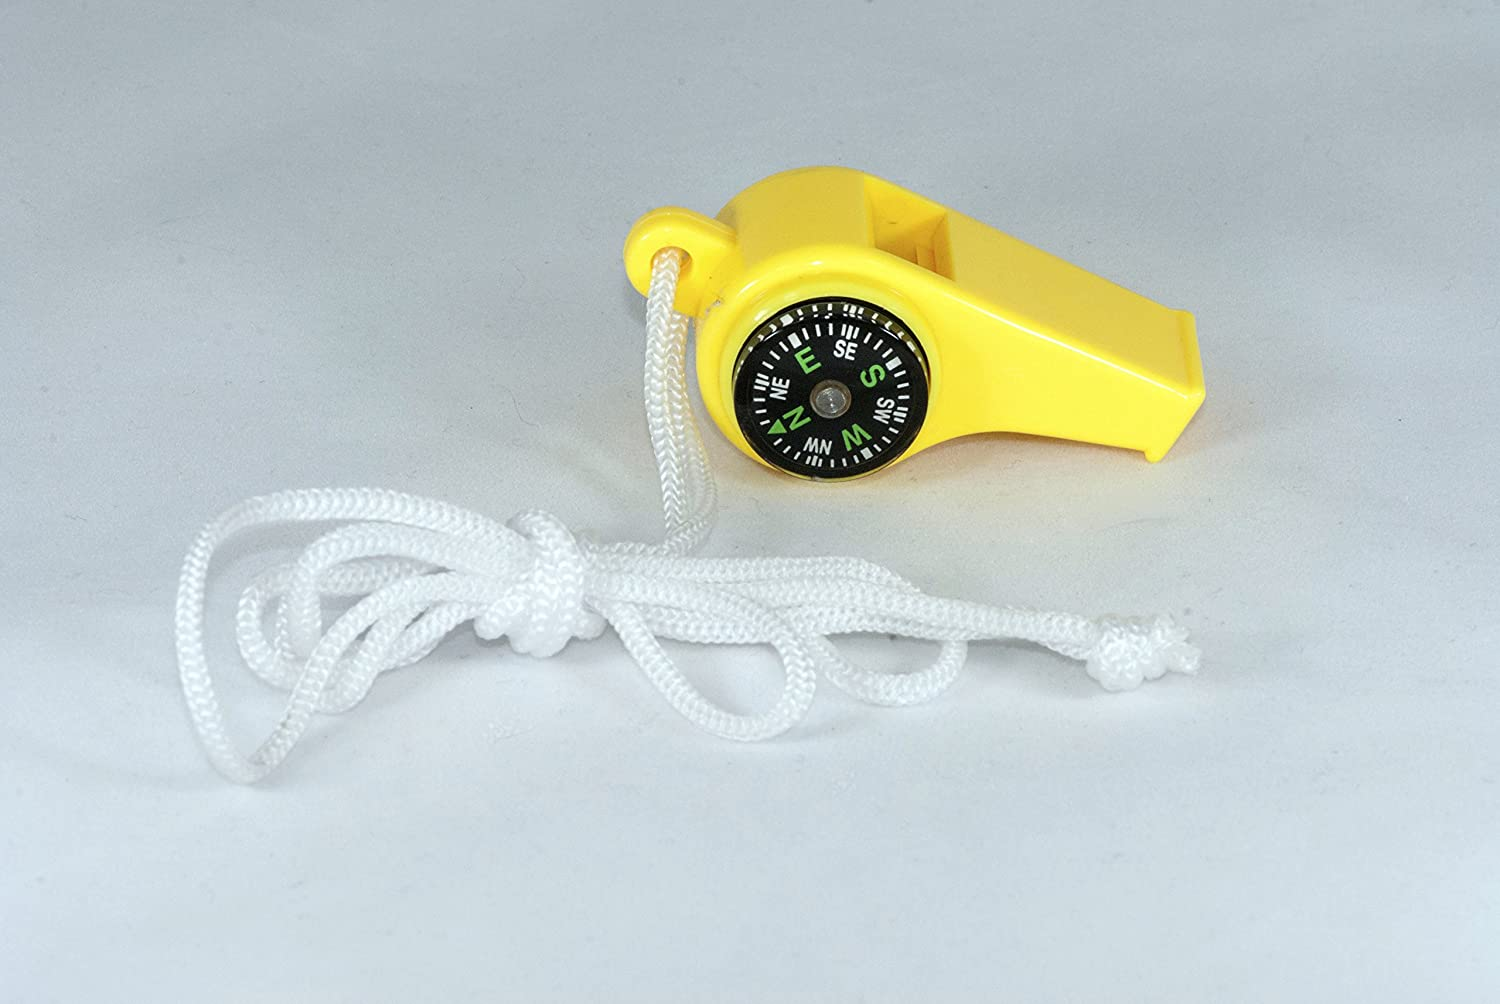 Whistle Combo Dial Thermometer 3-in-1 Survival Whistle Sun Company TripleWhistle Compass